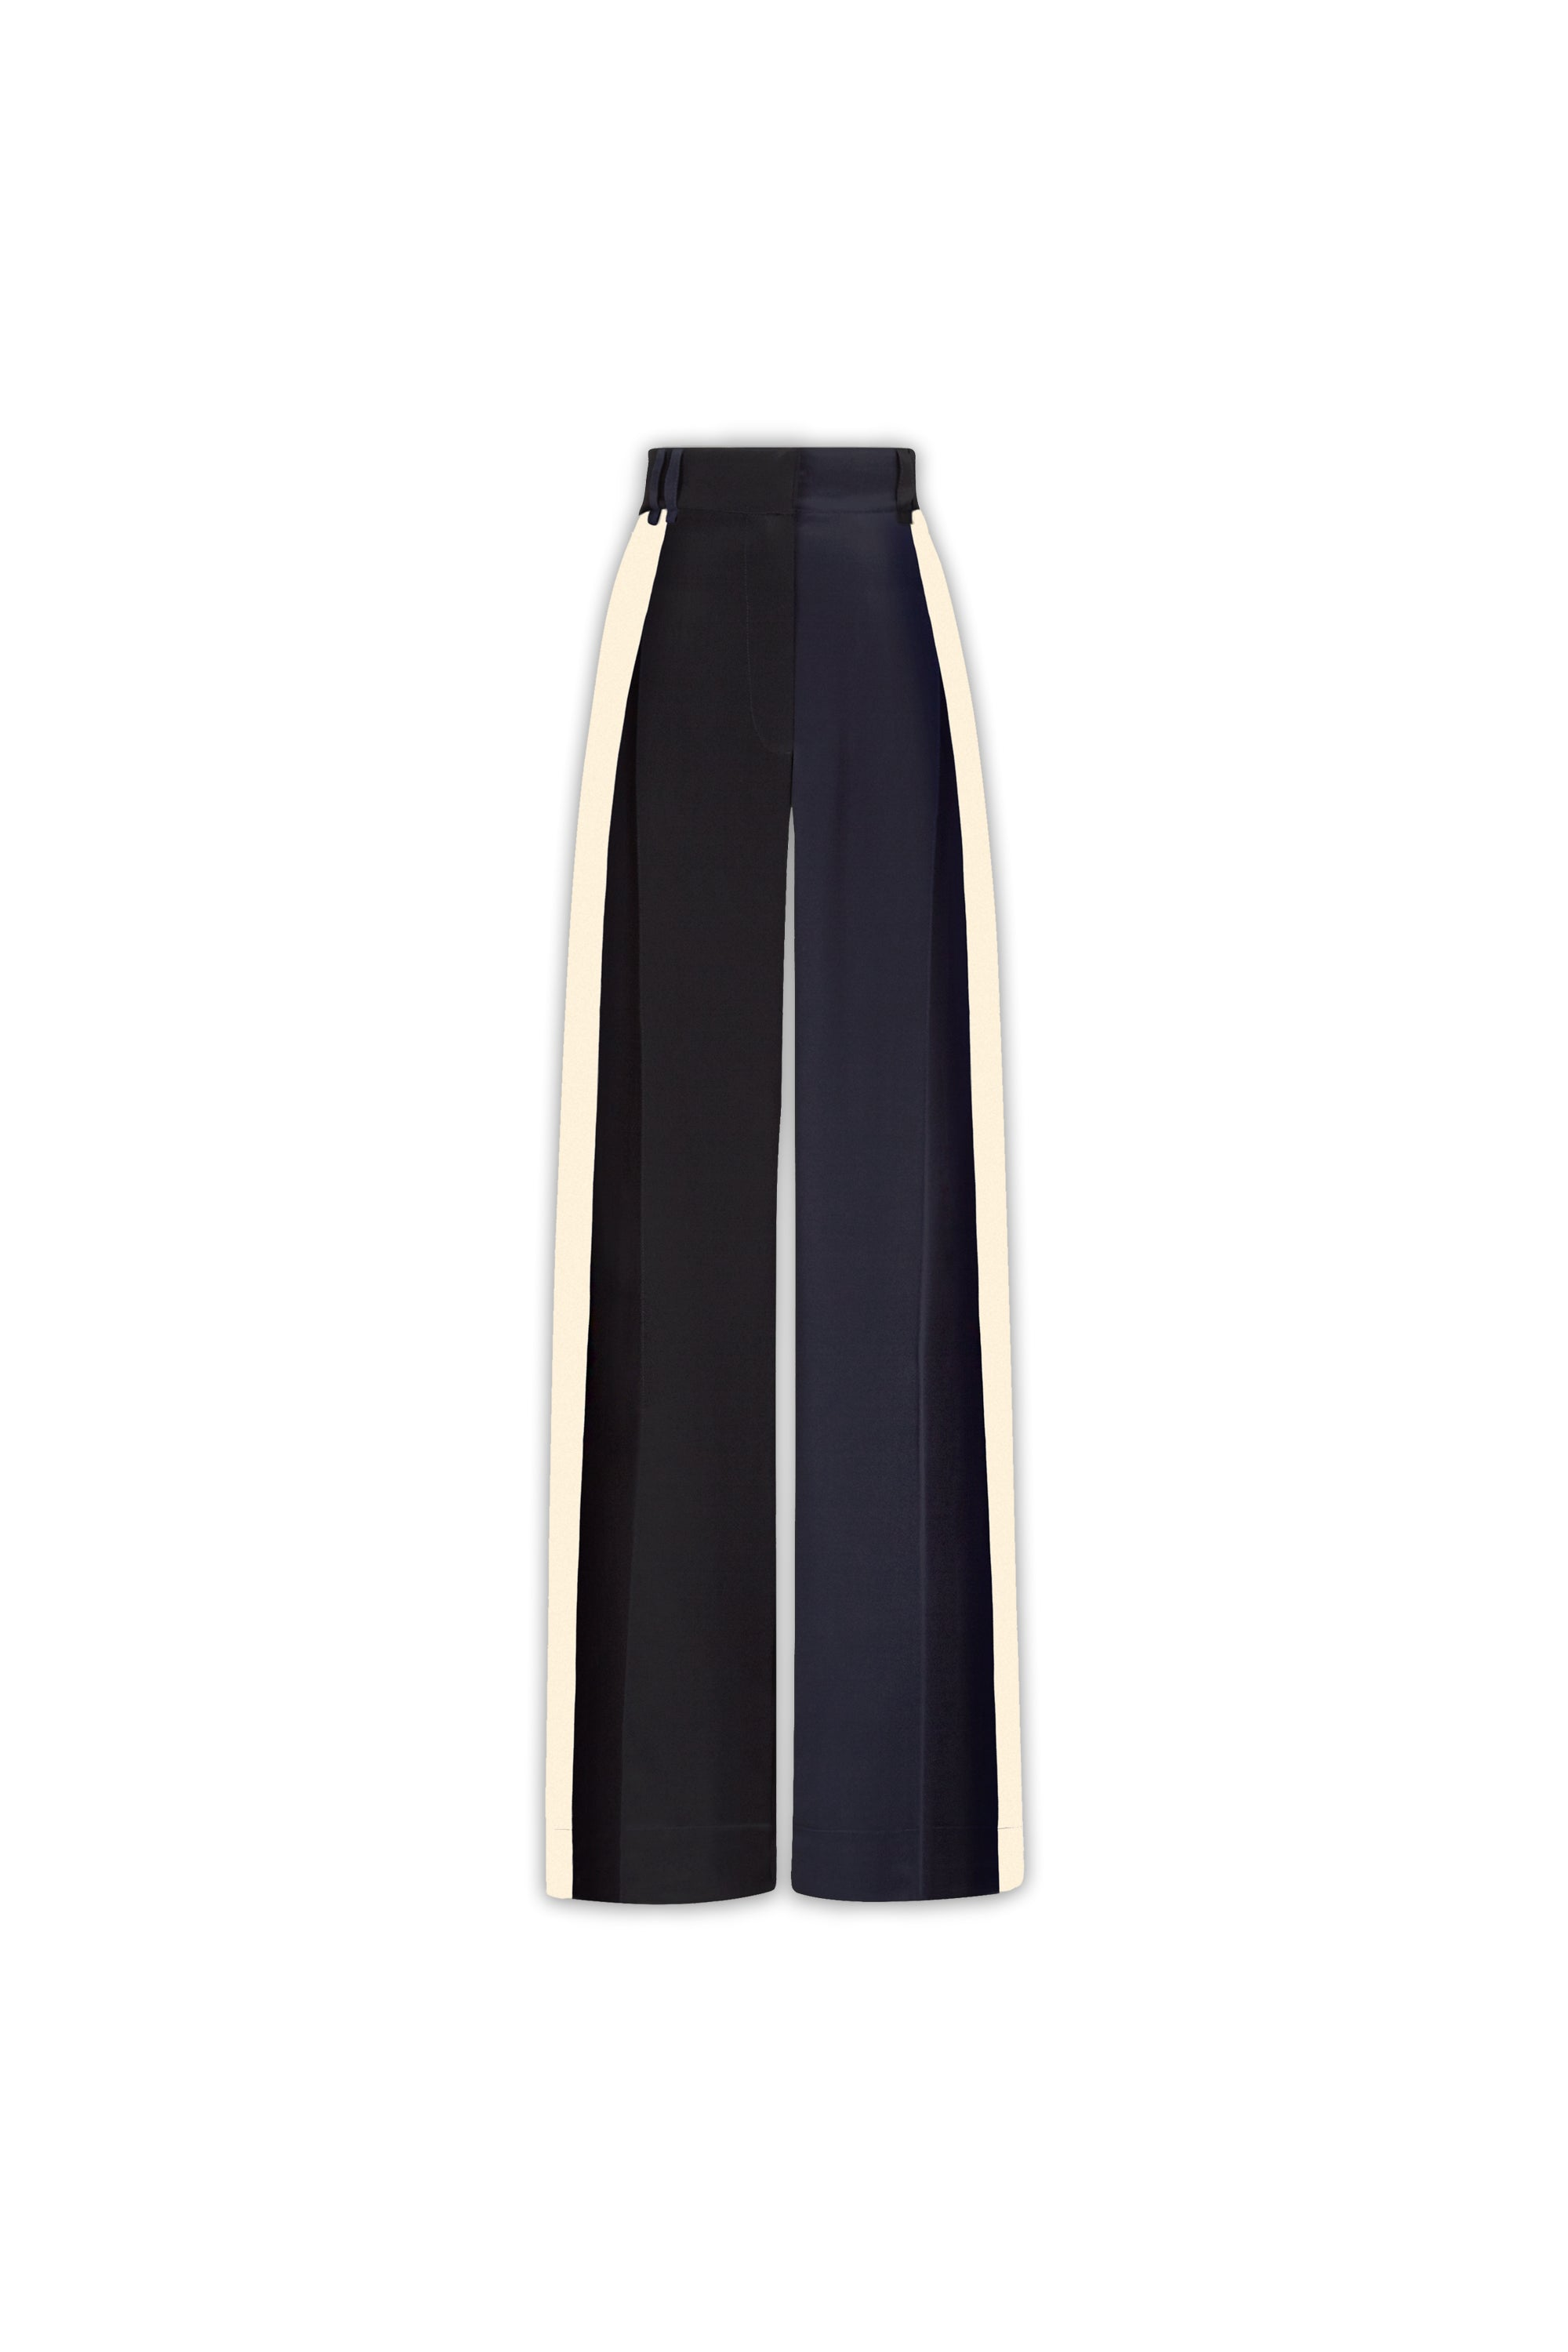 The Serena Trouser - Navy, Black & Ivory Cream Two Tone Silk